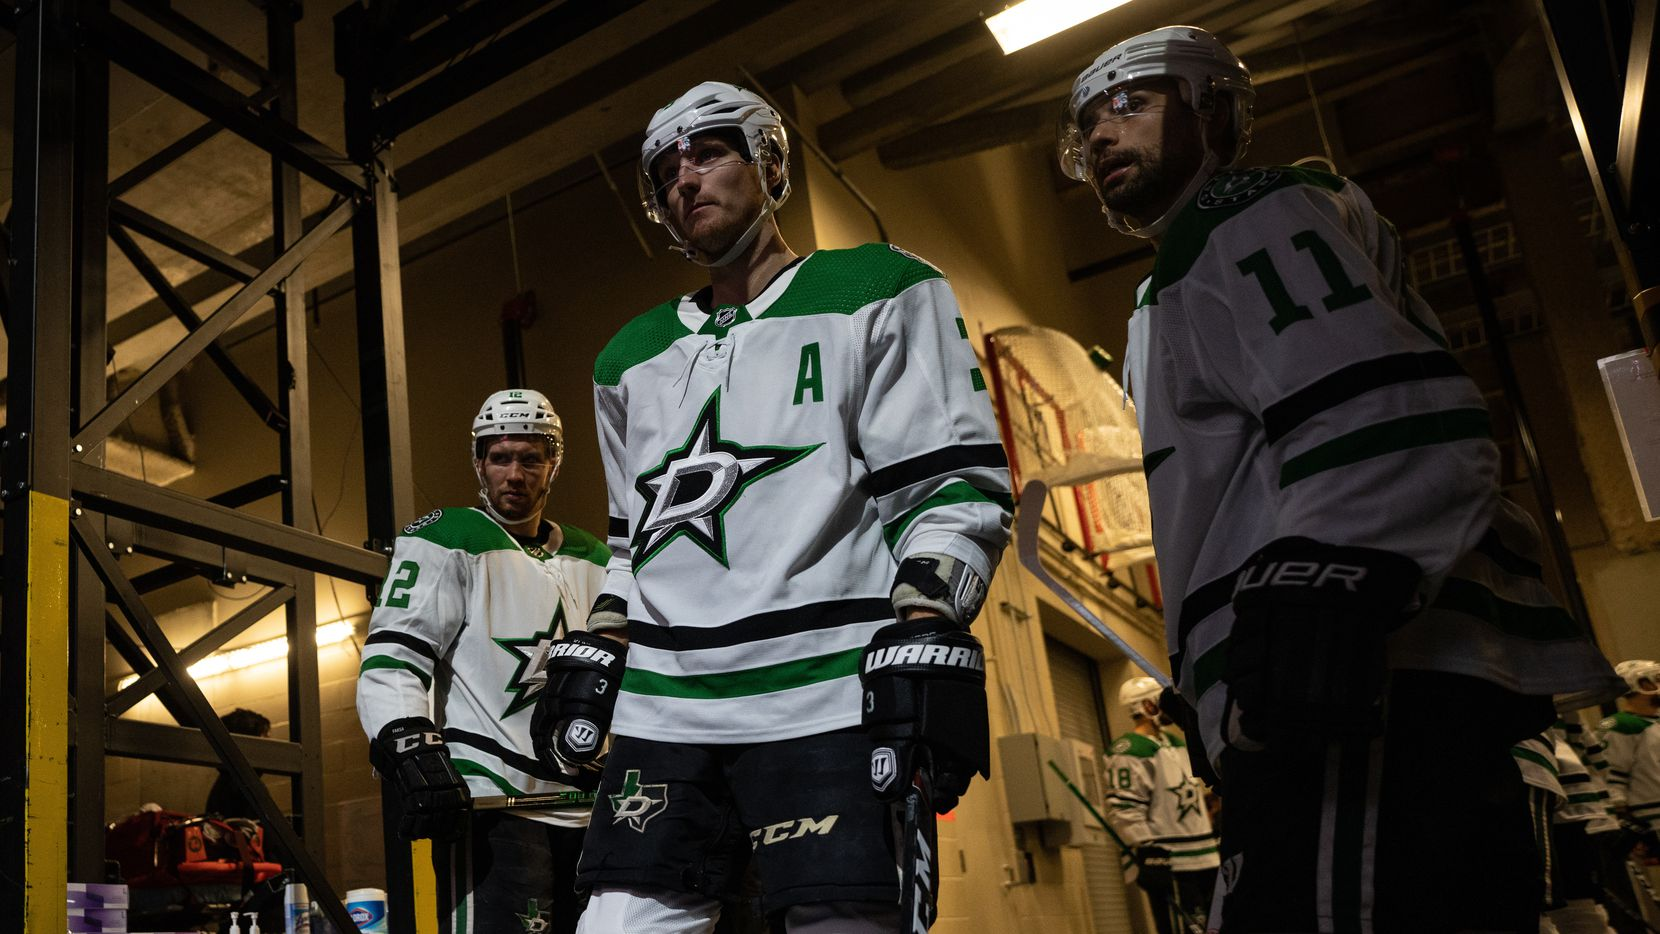 From L to R: Dallas Stars forward Radek Faksa (12), defenseman John Klingberg (3), forward Andrew Cogliano (11).